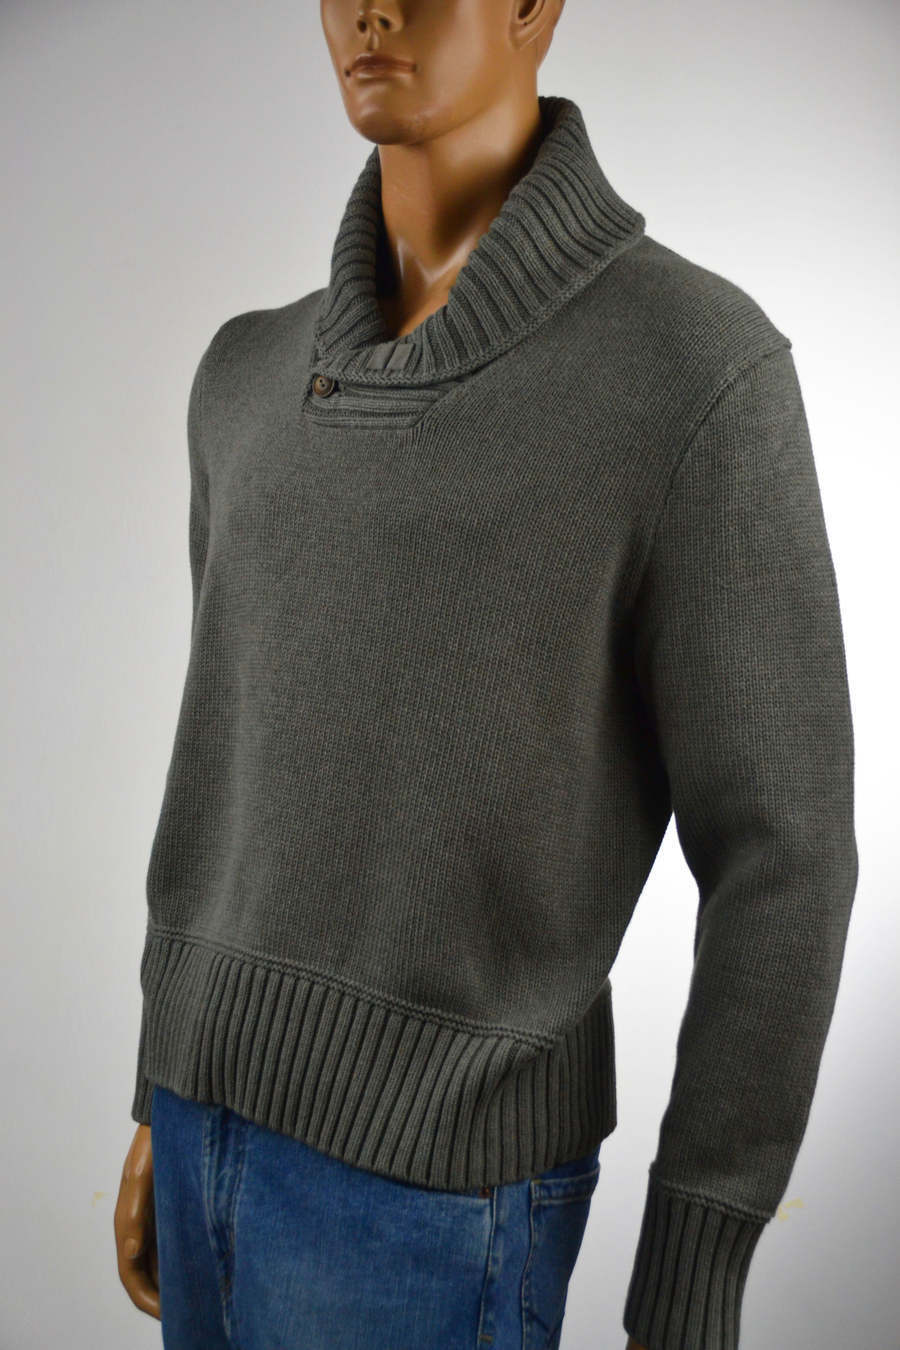 Ralph Lauren  Herren Shawl Collar grau Heather Sweater- Small- NWT